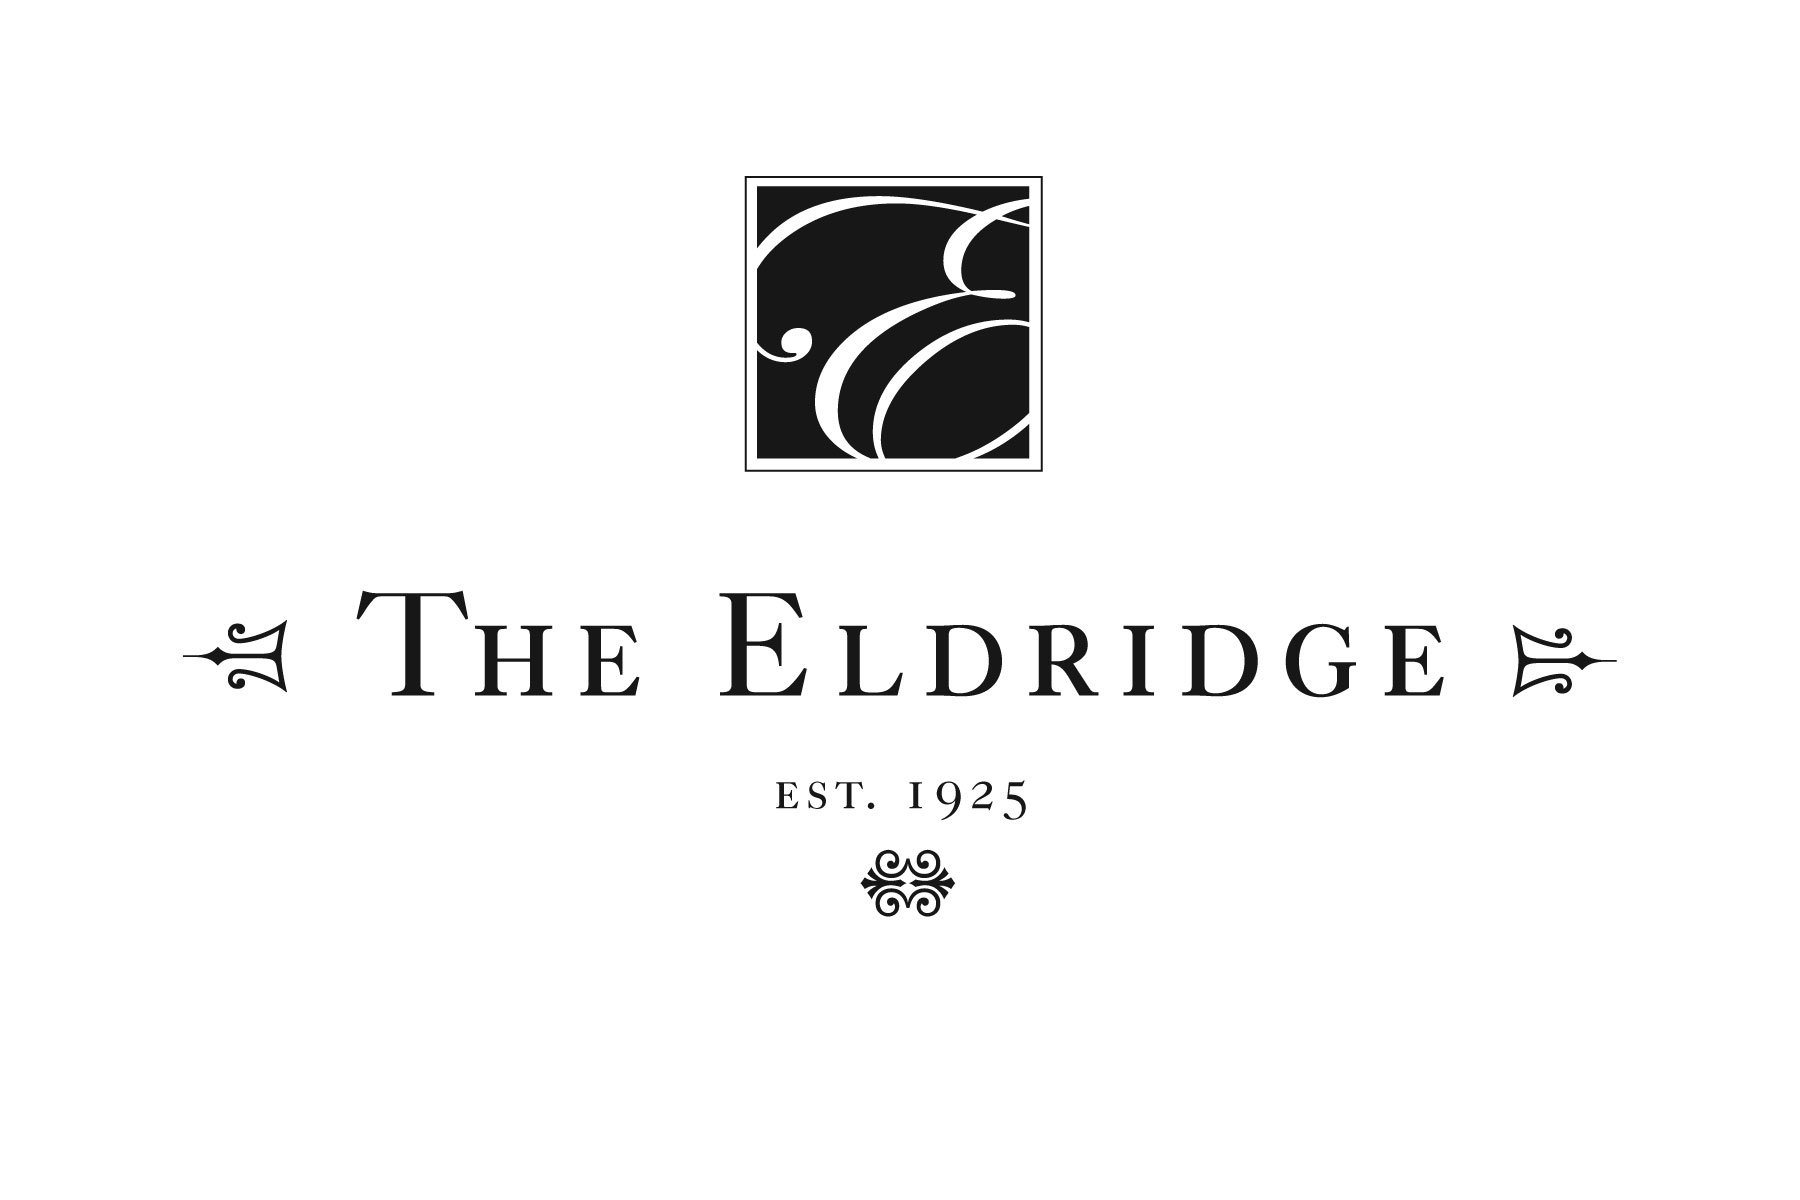 The Eldridge